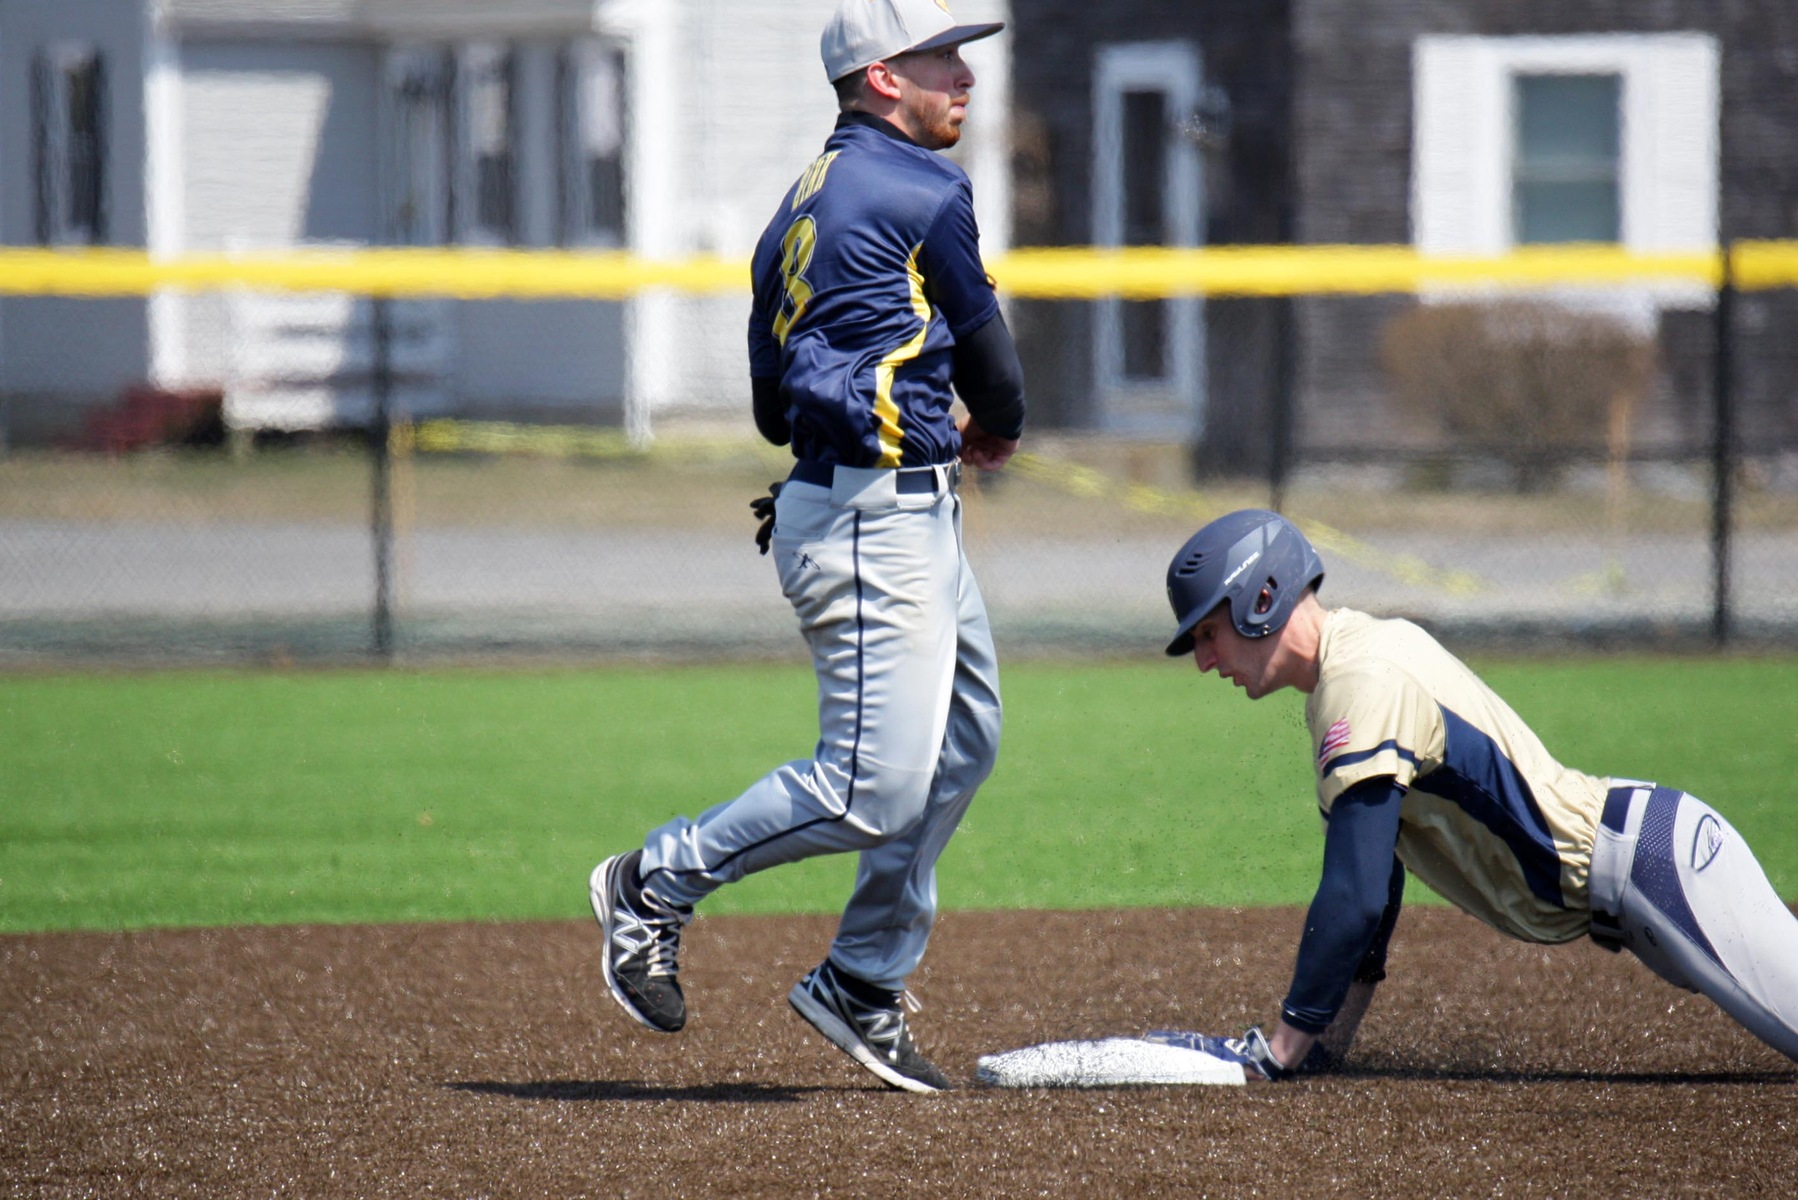 Bucs head home 0-3 After Second Loss to Dutchmen